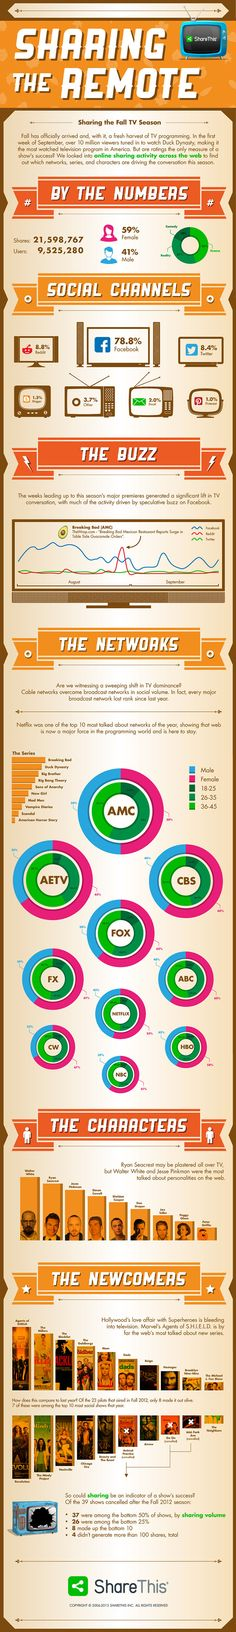 [INFOGRAPHIC] Sharing the Remote: Fall TV Social Activity via @ShareThis